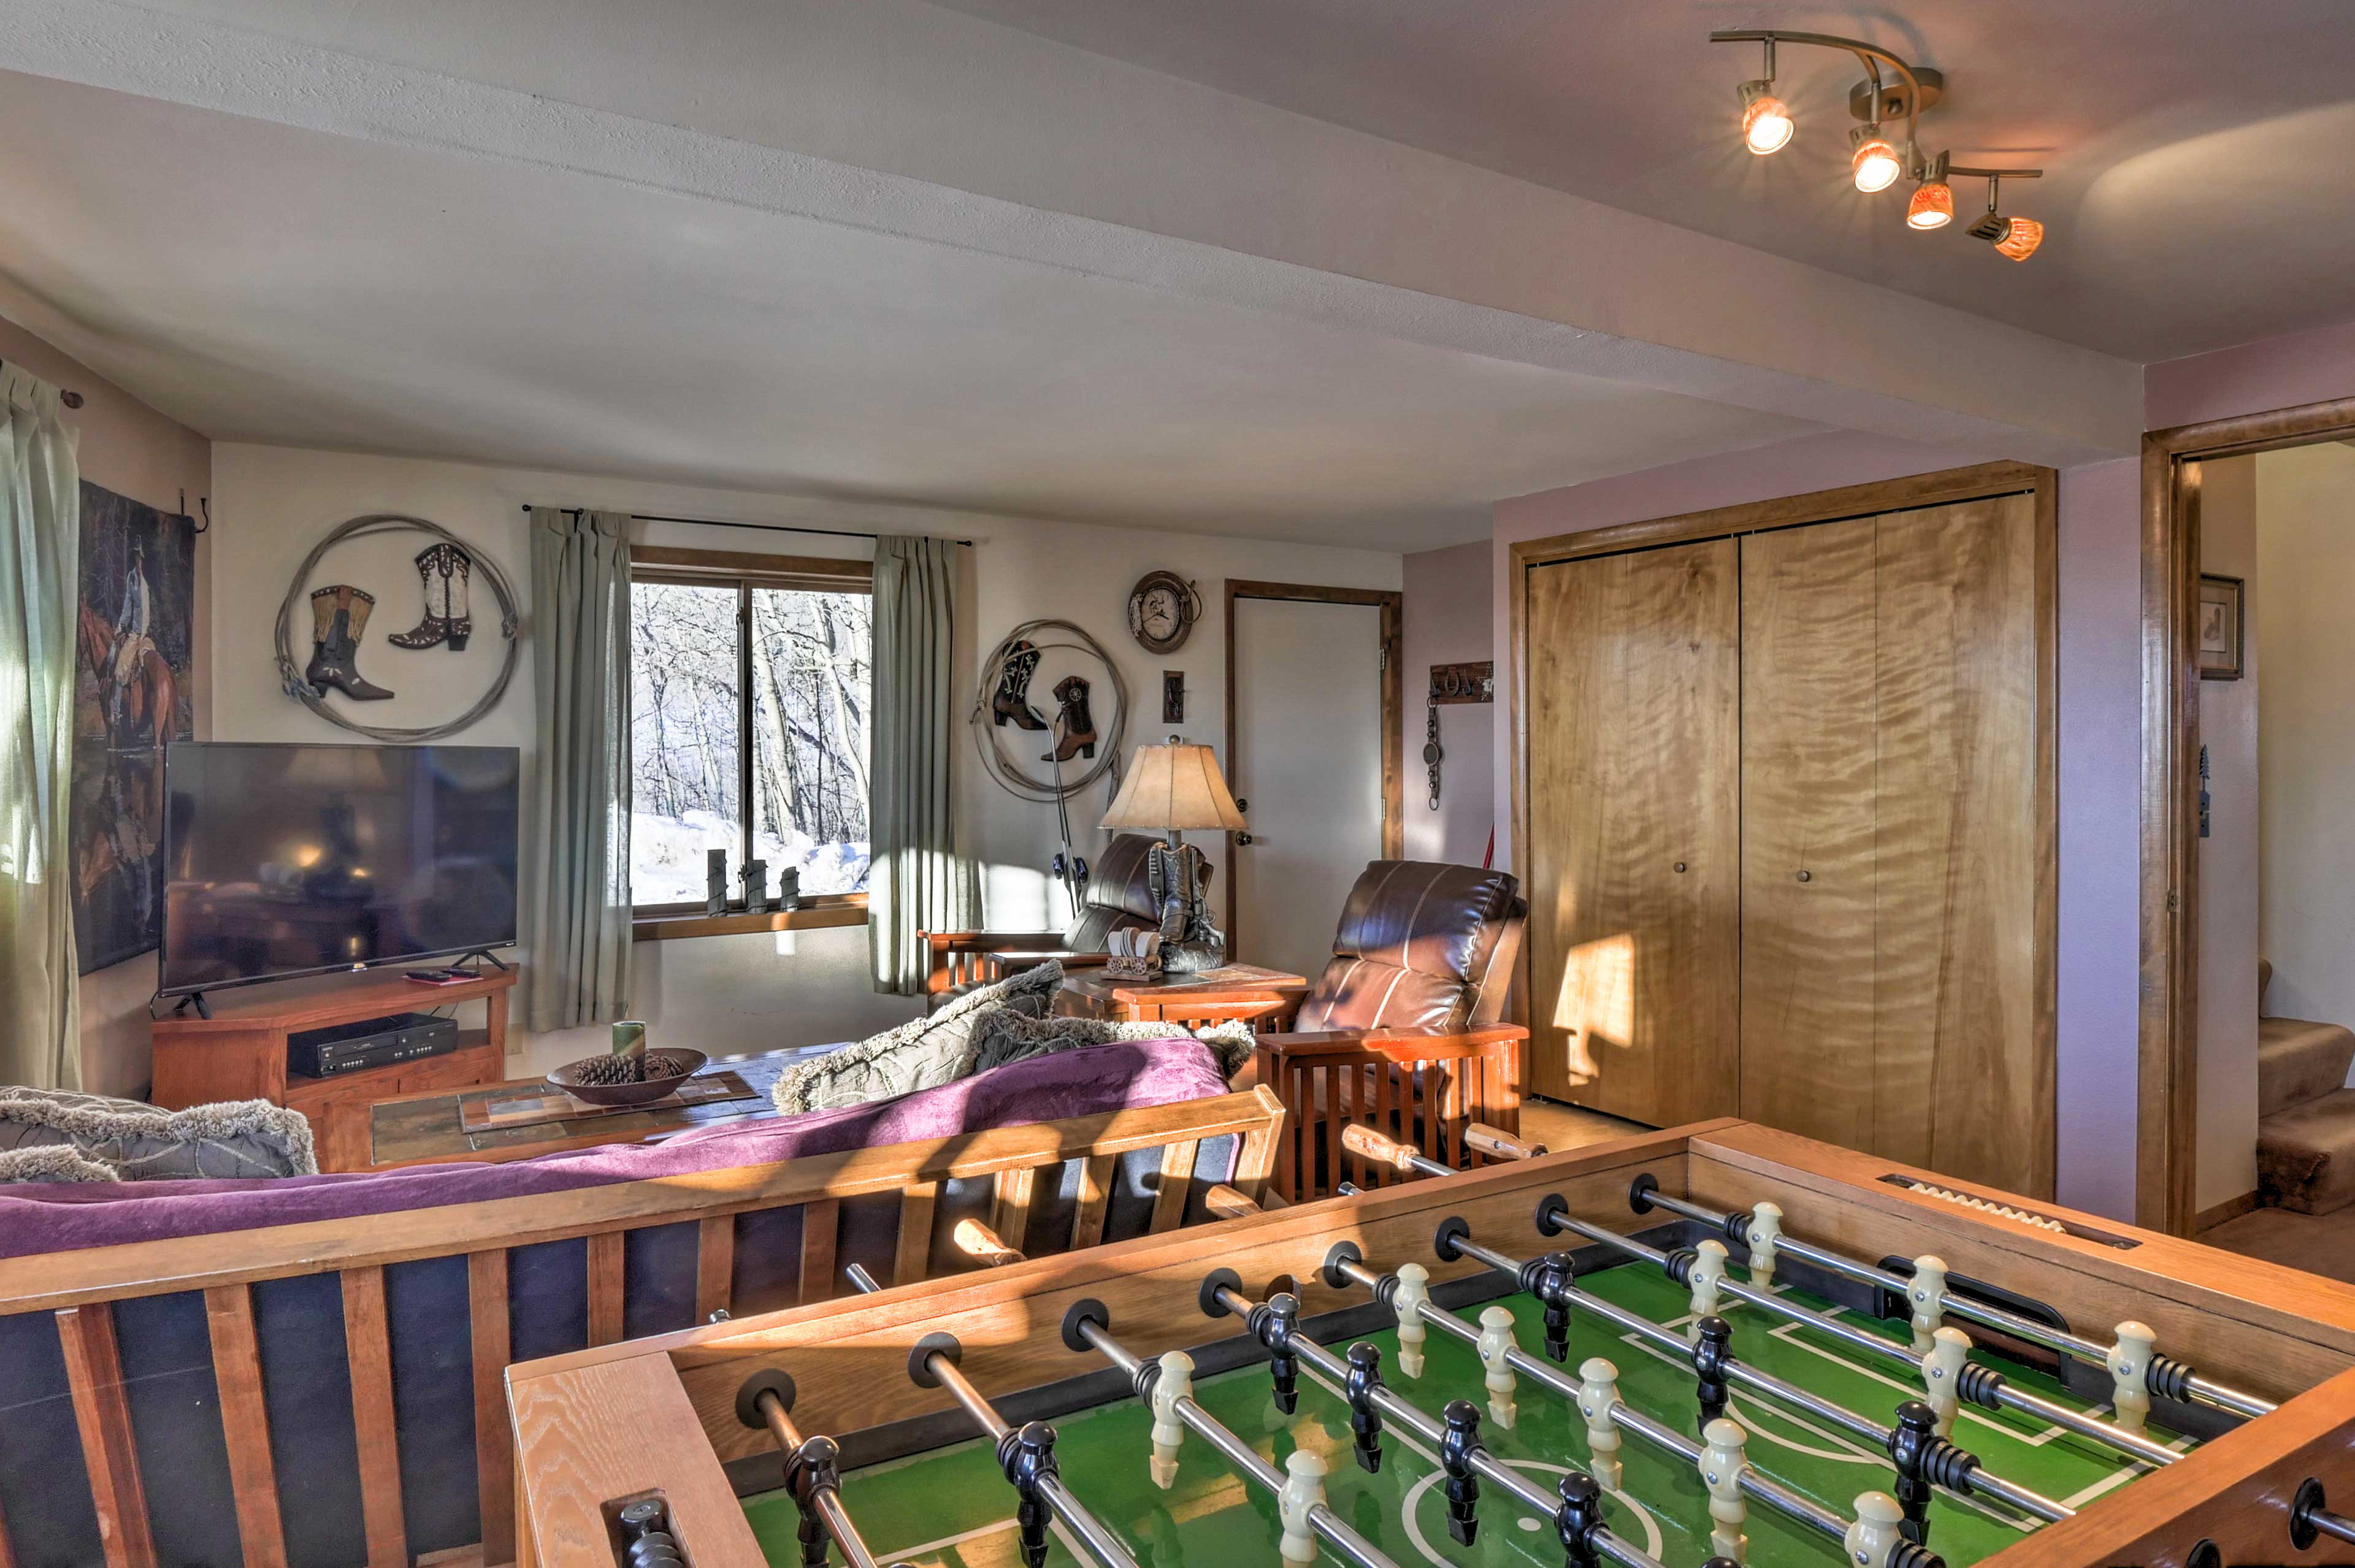 The space features a Foosball table!